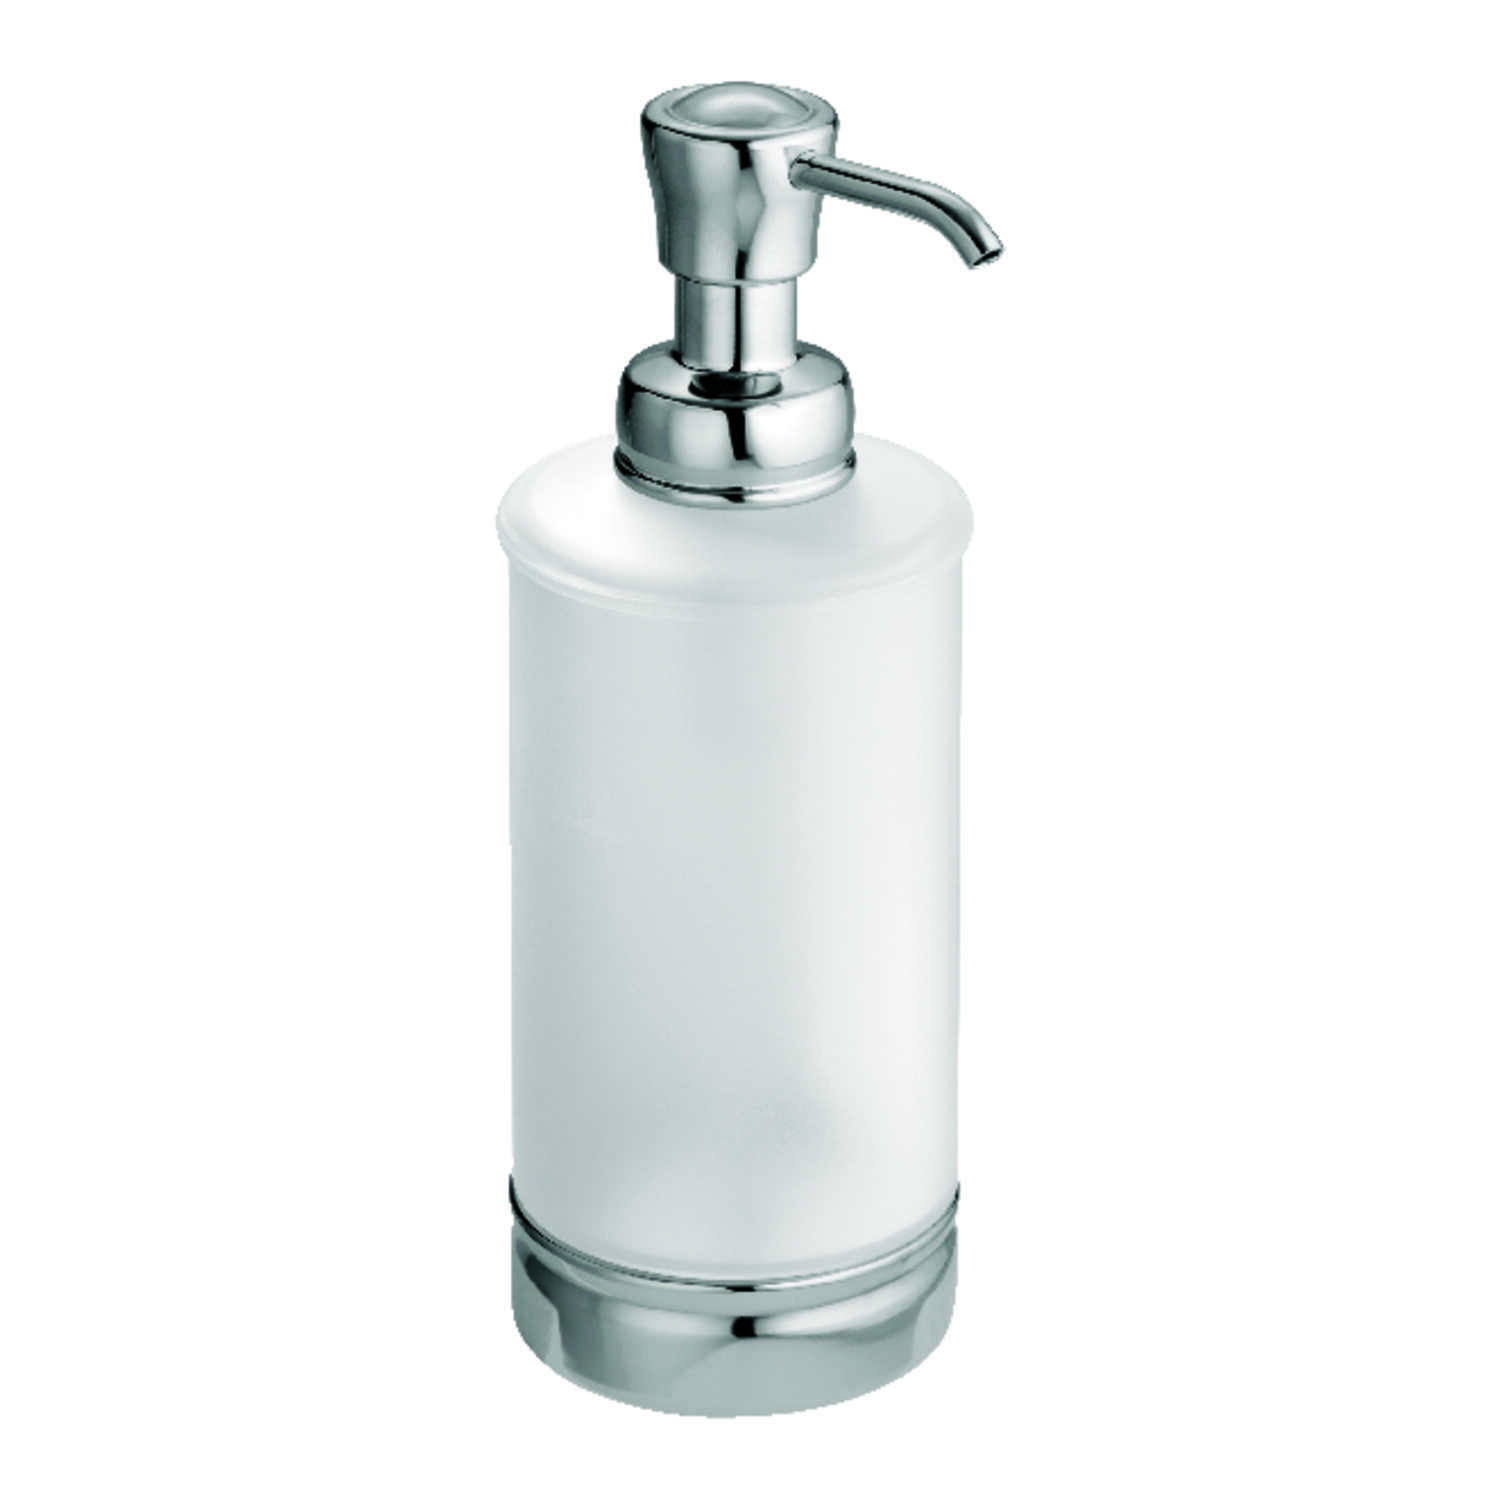 InterDesign  York  Soap Dispenser  7.9 in. H x 3 in. W x 3 in. L Frost  Plastic